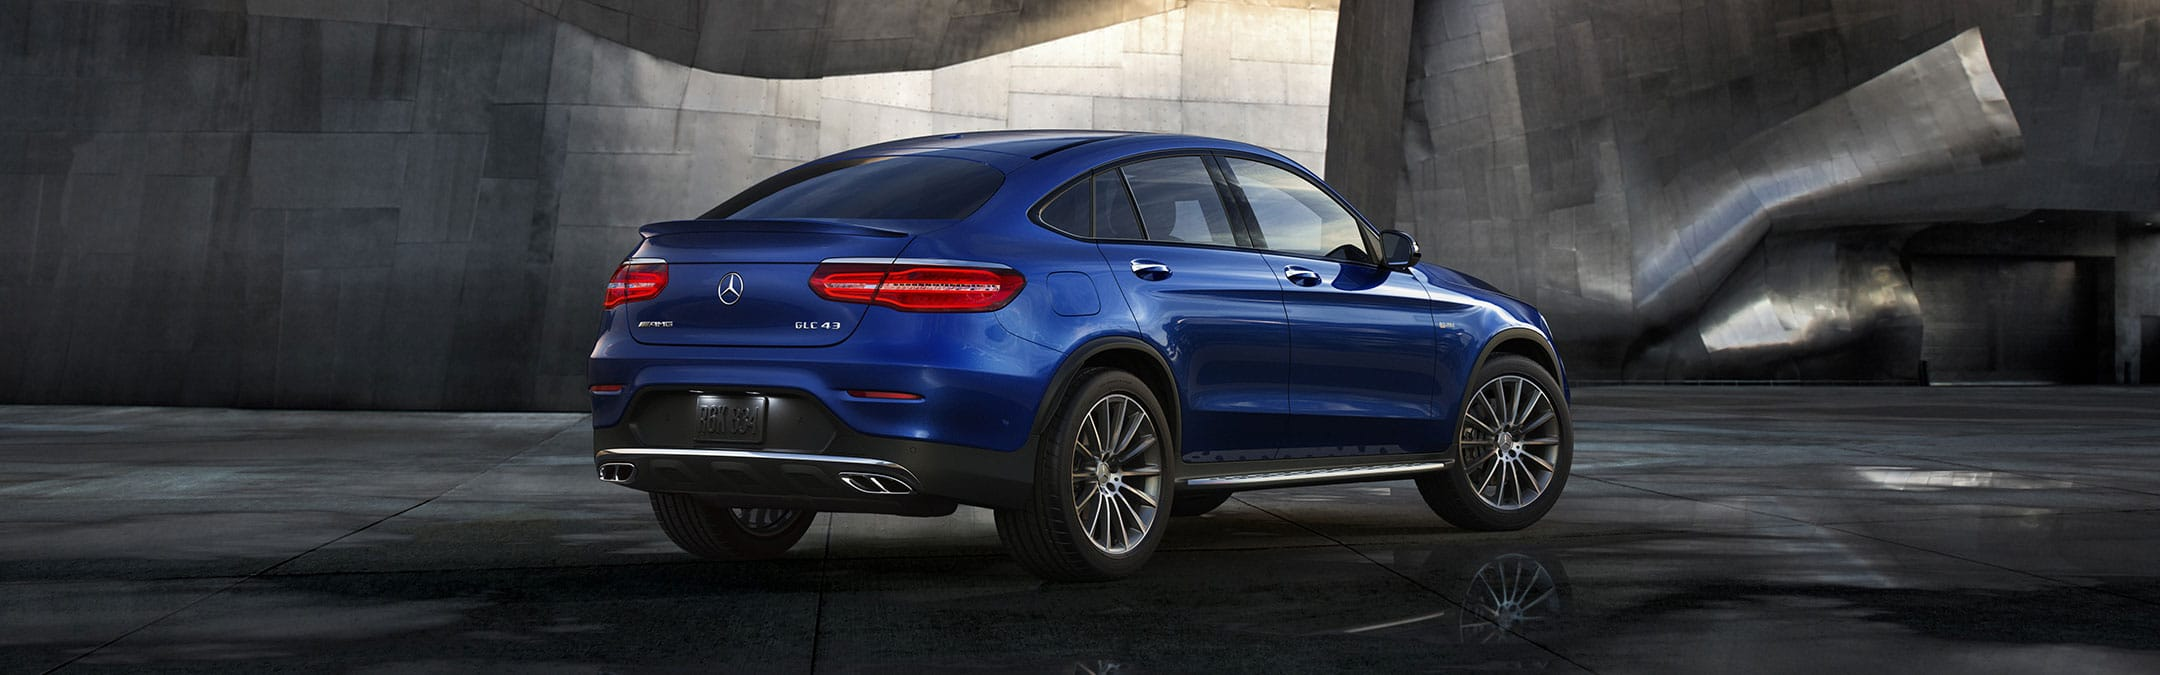 Mercedes-AMG GLC 4MATIC Coupe